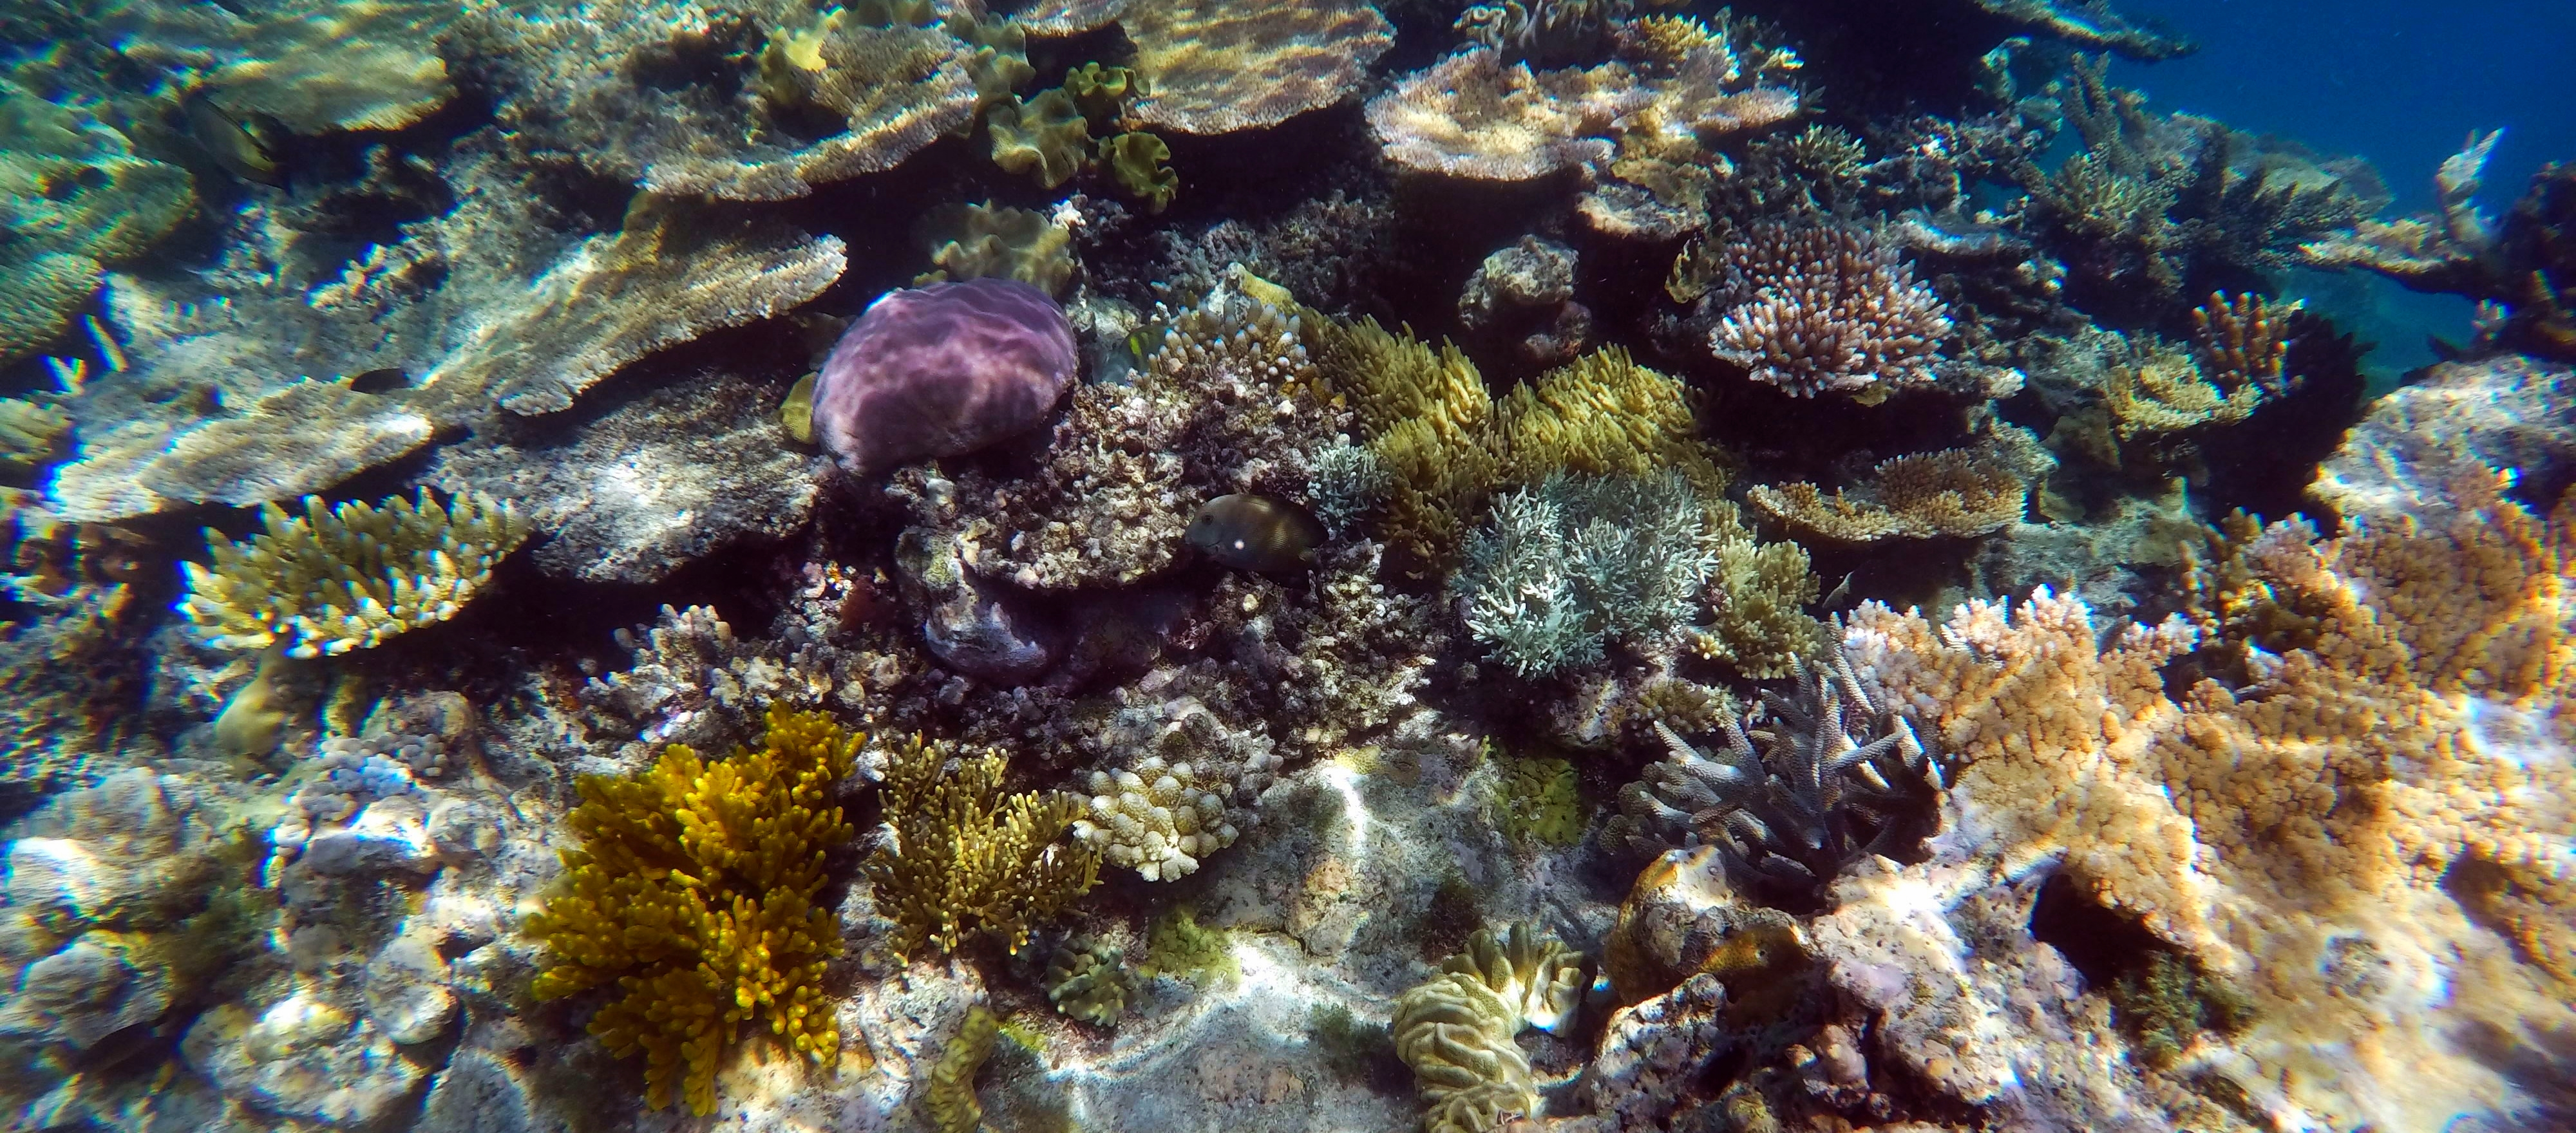 Does the Great Barrier Reef Live up to the Hype?